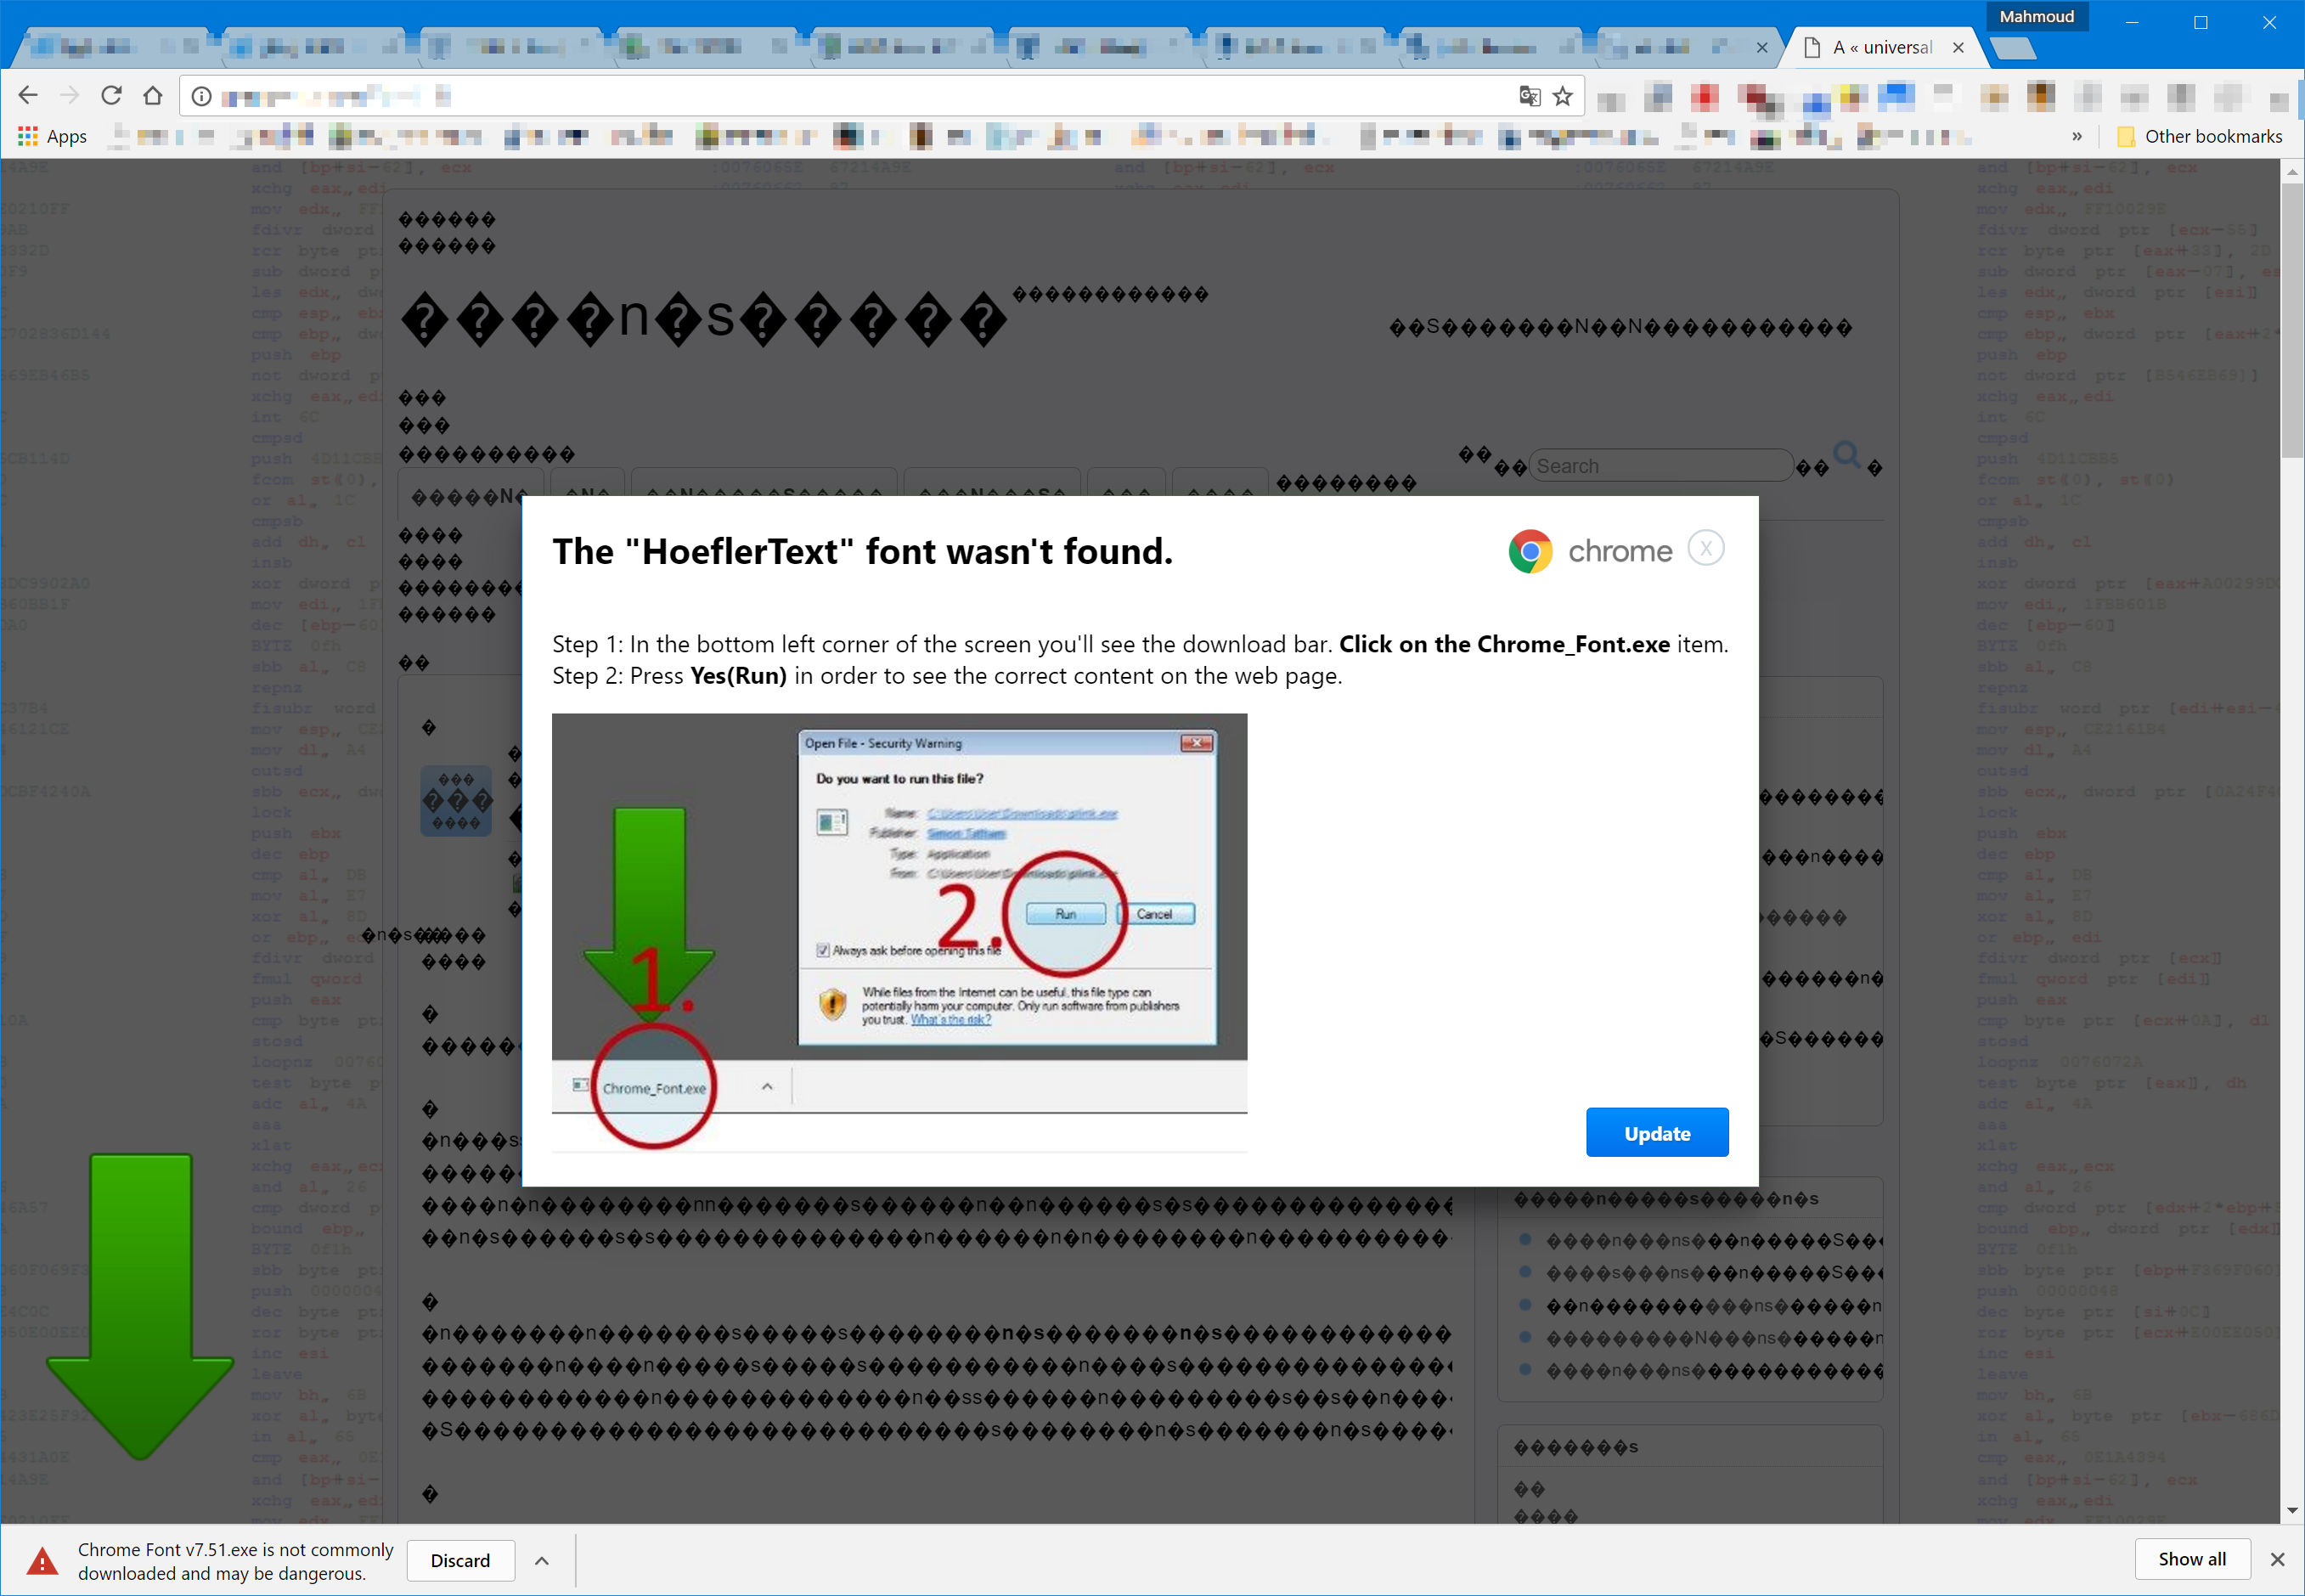 Chrome Users on Windows, Mac Being Targeted by 'Font Wasn't Found' Malware: Report